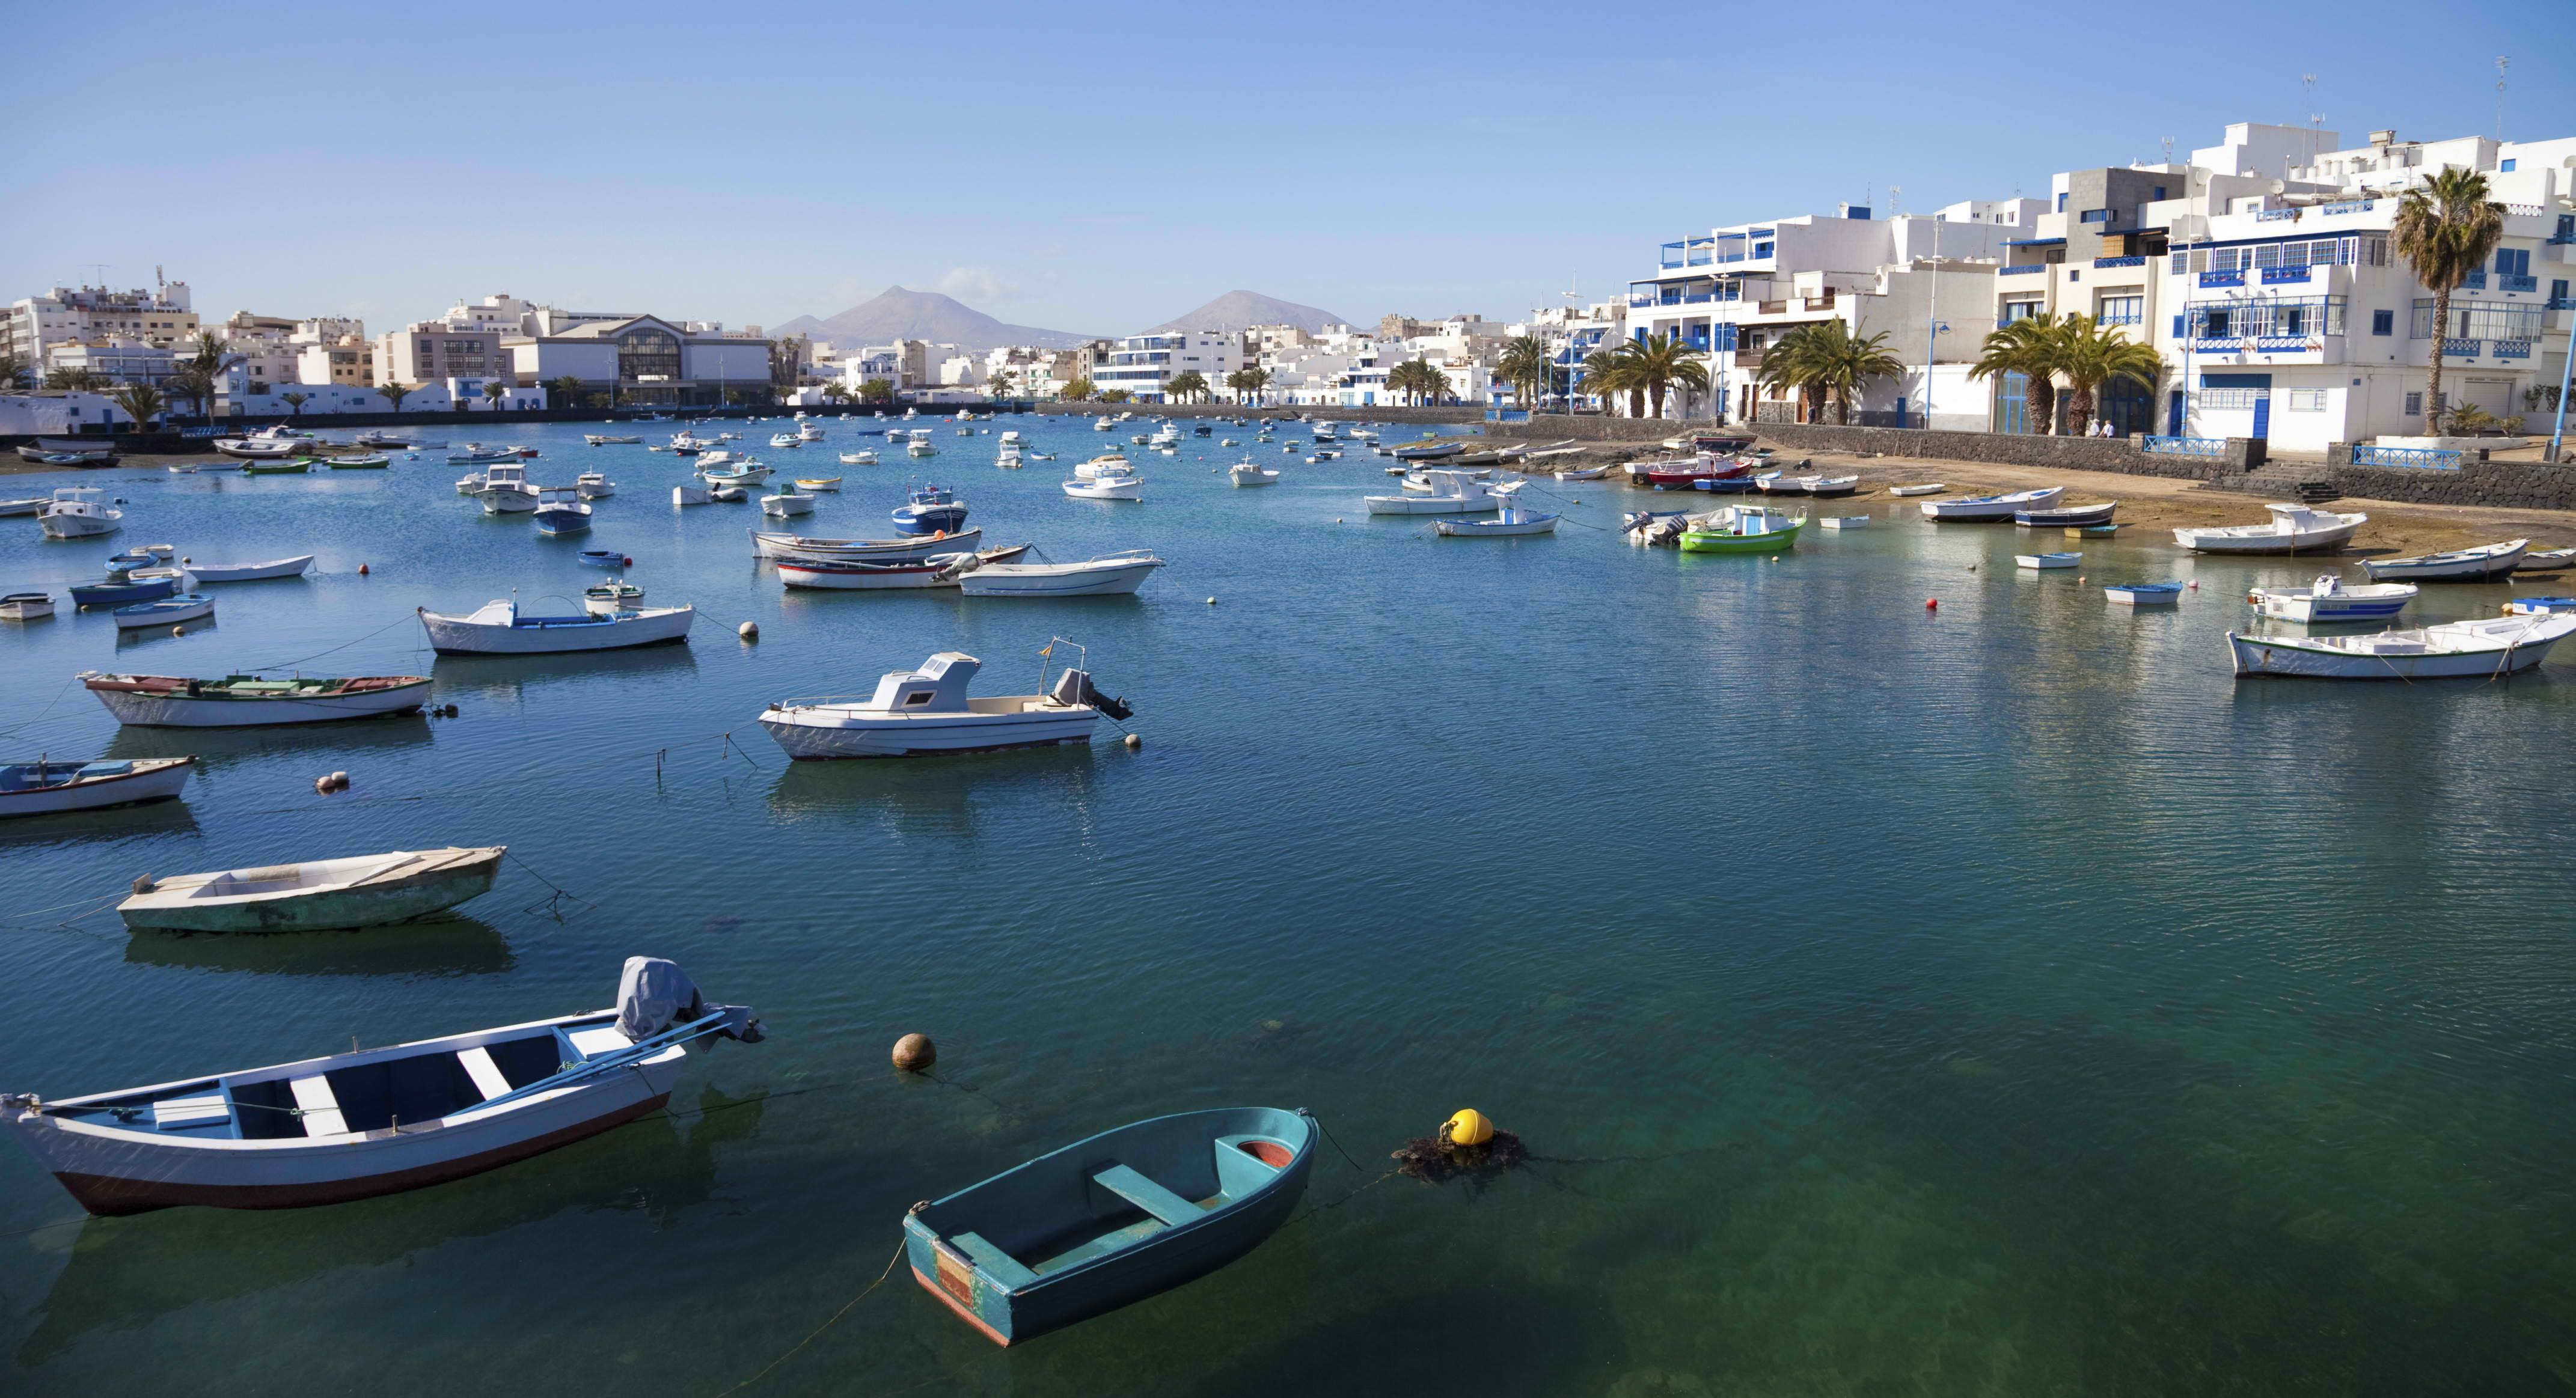 How to Spend 3 Days in Lanzarote